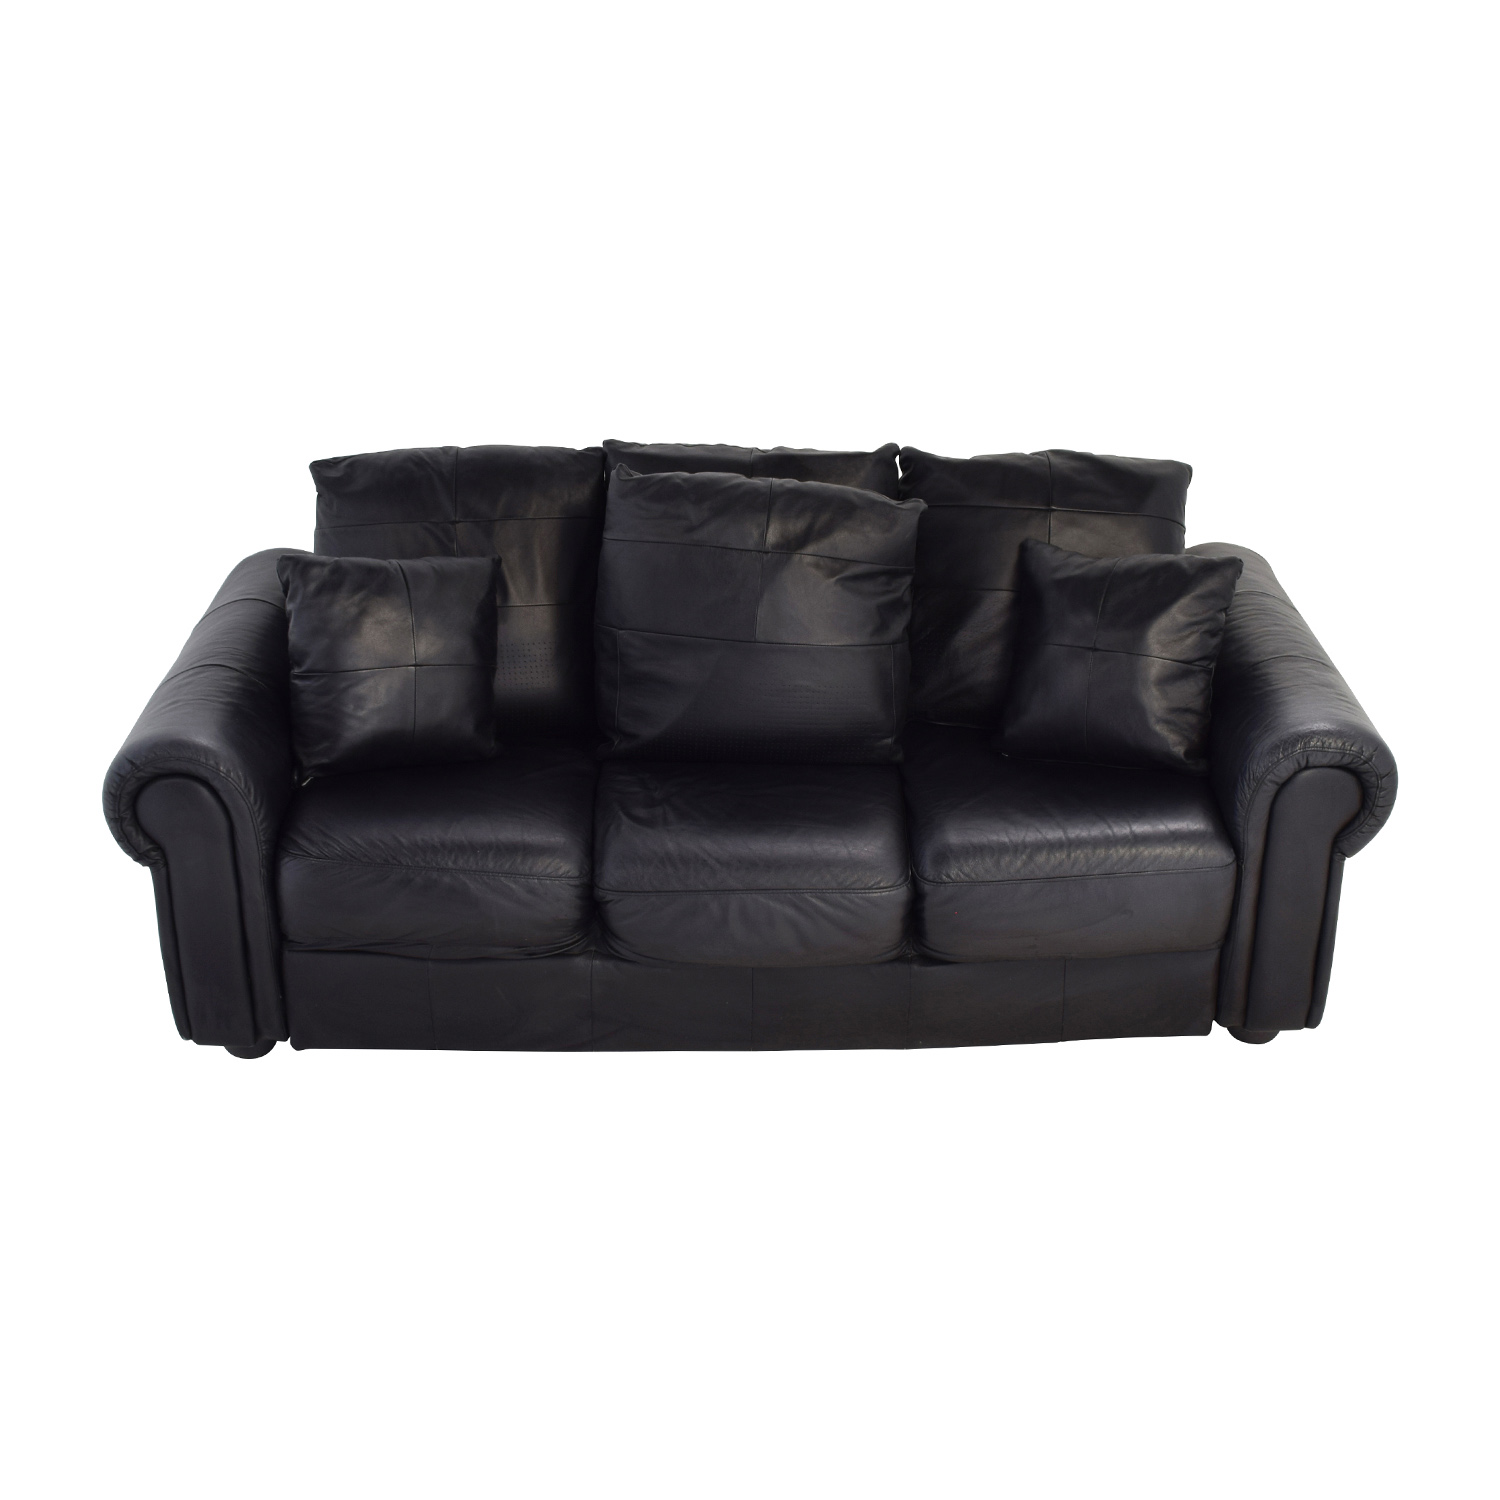 buy ABC Carpet & Home Black Leather Couch ABC Carpet and Home